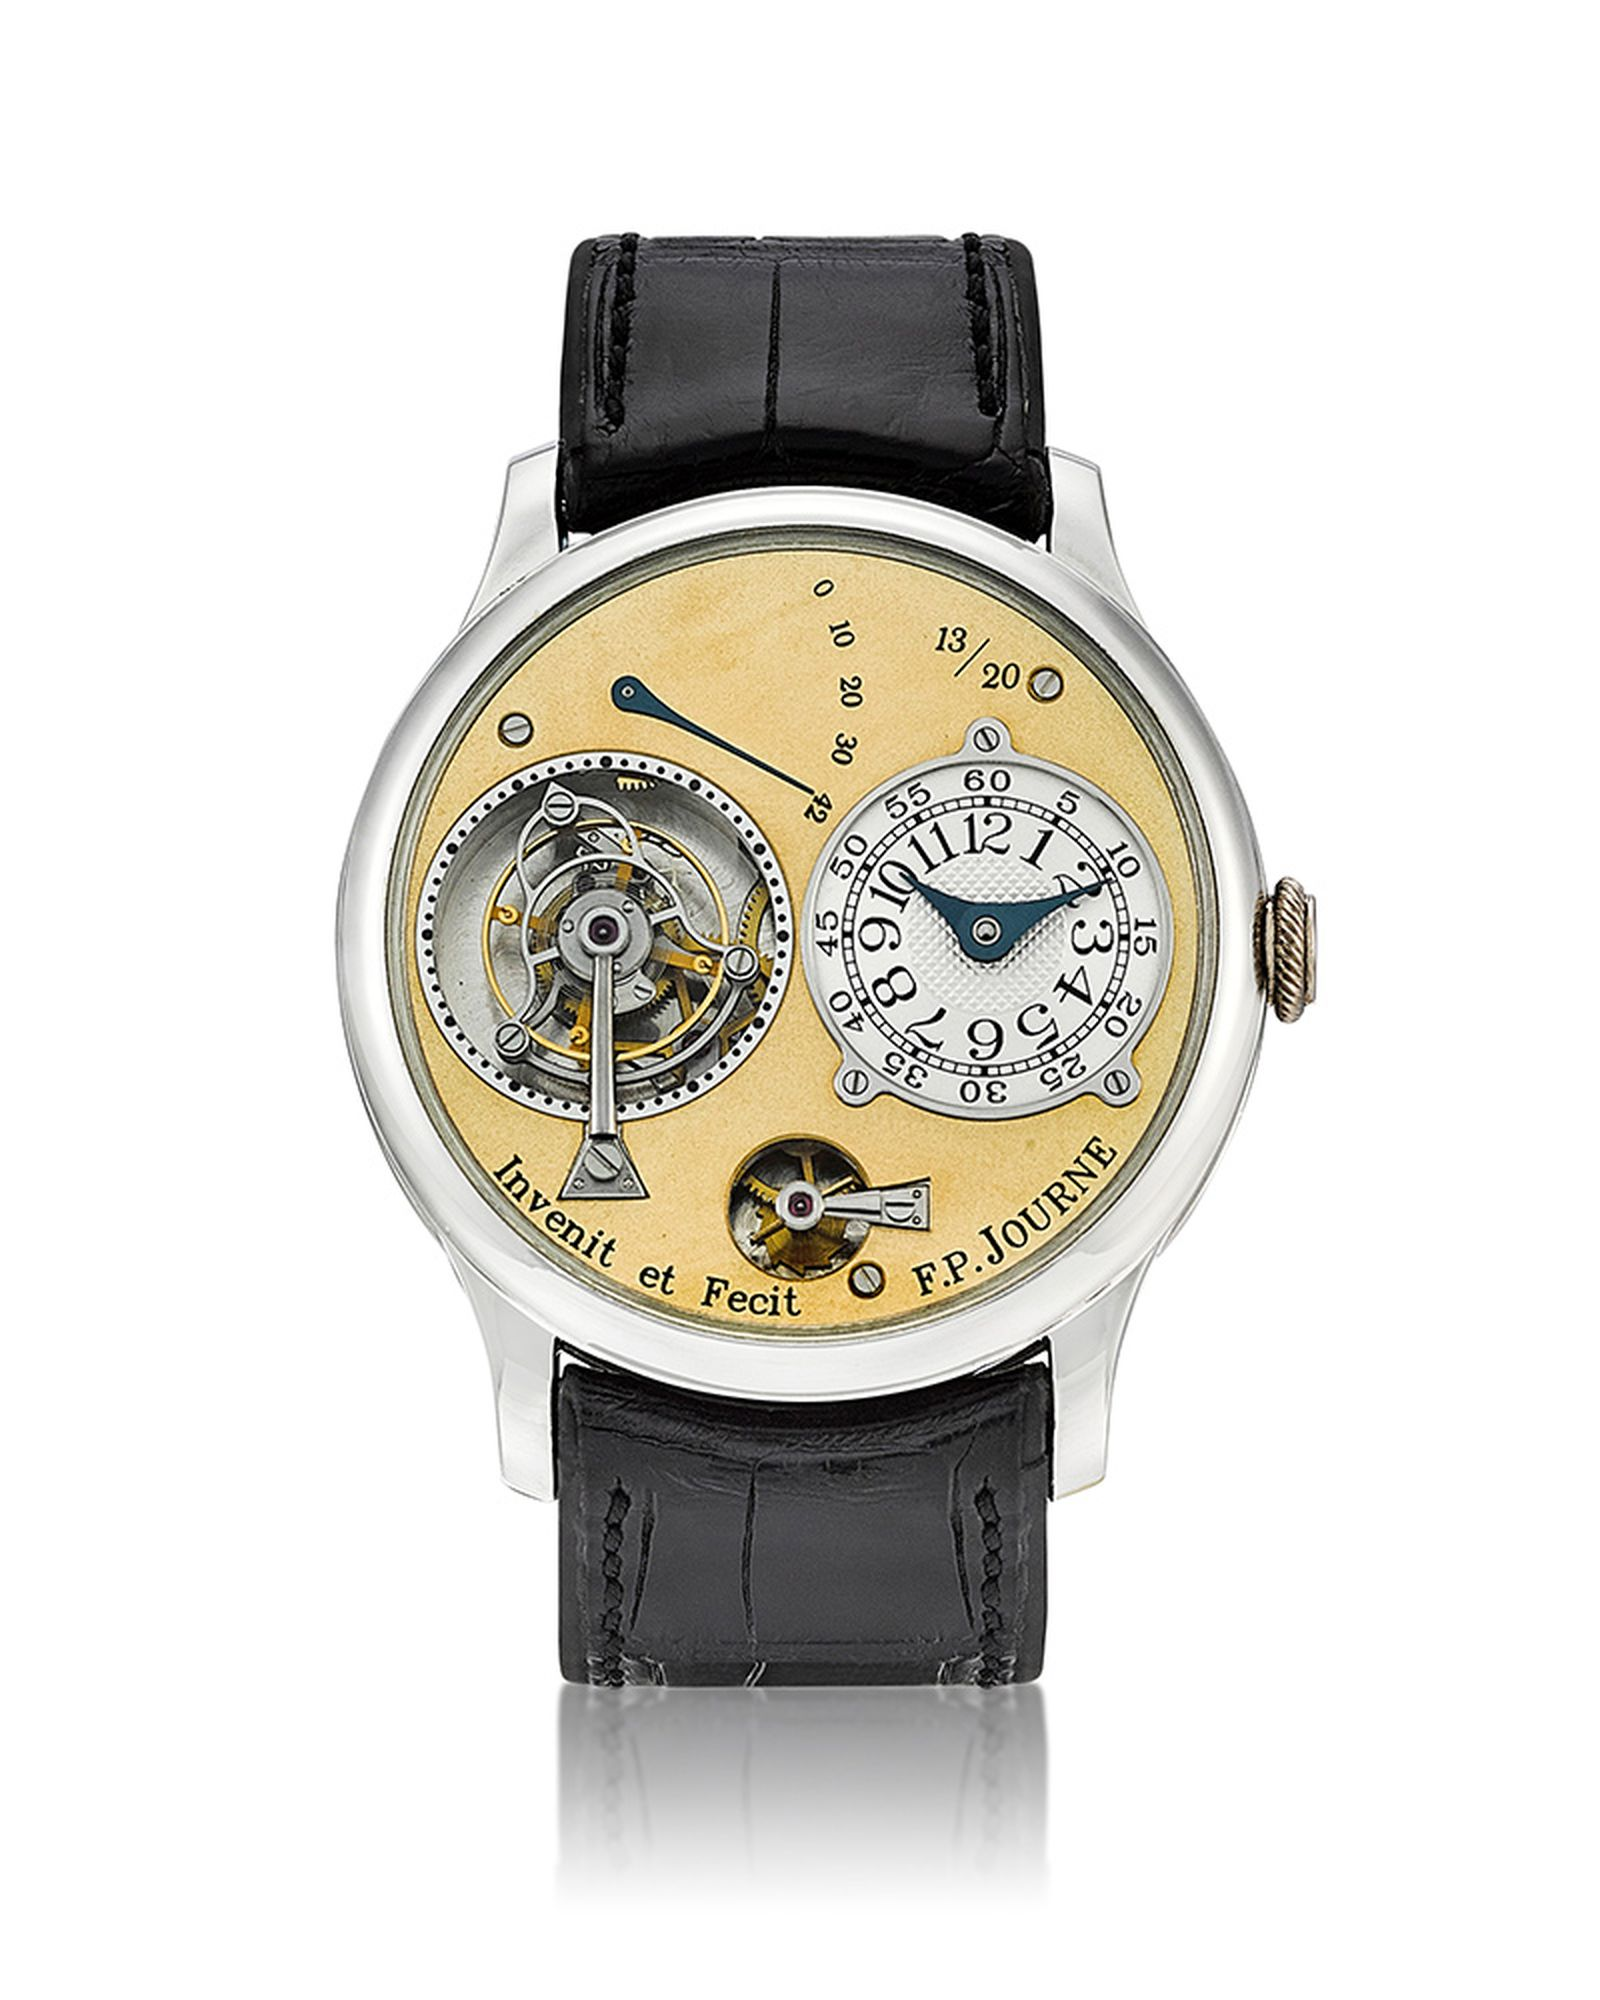 sothebys-hong-kong-important-watch-auction-02